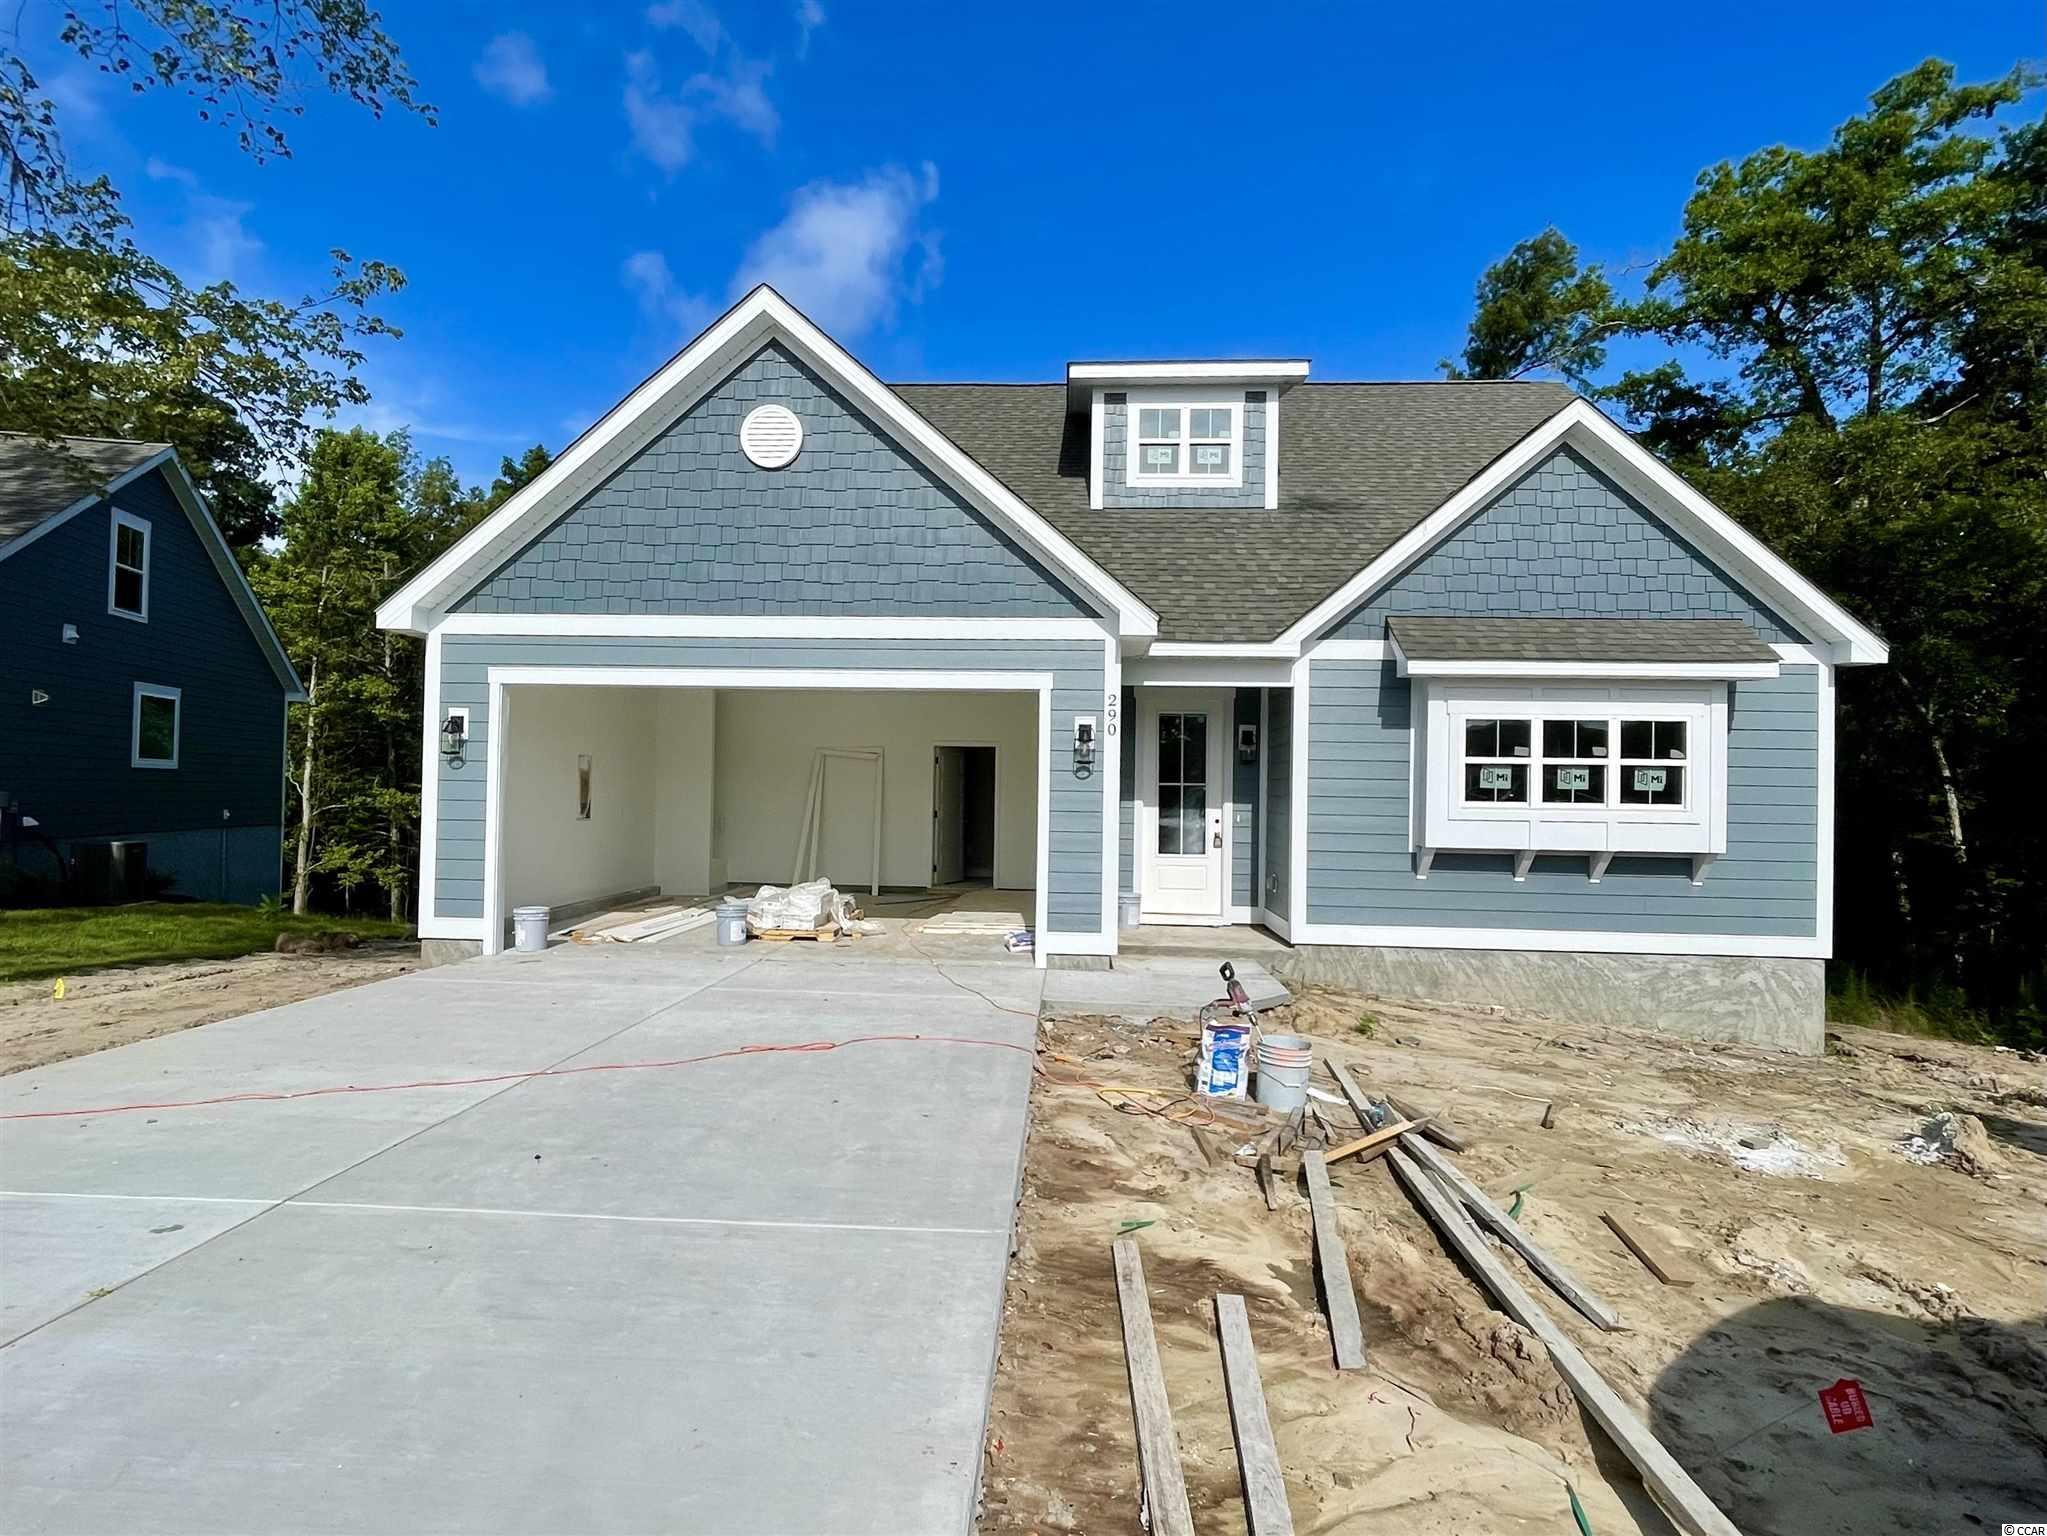 This home is expected to be completed in June/July 2021 This 3 bedroom/2.5 bath home is currently under construction on a beautiful and private lot in the gated community of Rivers Edge Plantation. Rivers Edge Plantation is located off the popular Highway 90 corridor, and is only minutes from all the Grand Strand has to offer via International Drive or SC Highway 22. The community features a private boat launch, dock, clubhouse, pool, and playground. This home will feature a first floor master suite, covered back porch overlooking a wooded area and a stream. Additional features include a natural gas fireplace, natural gas cooking, beautiful kitchen with granite countertops, Luxury Vinyl Plank Flooring, LED lighting, soft close cabinetry, high end trim upgrades, and more! Check back often for construction updates, or contact an agent for more information! Builder is accepting pre-completion offers, secure this home today!